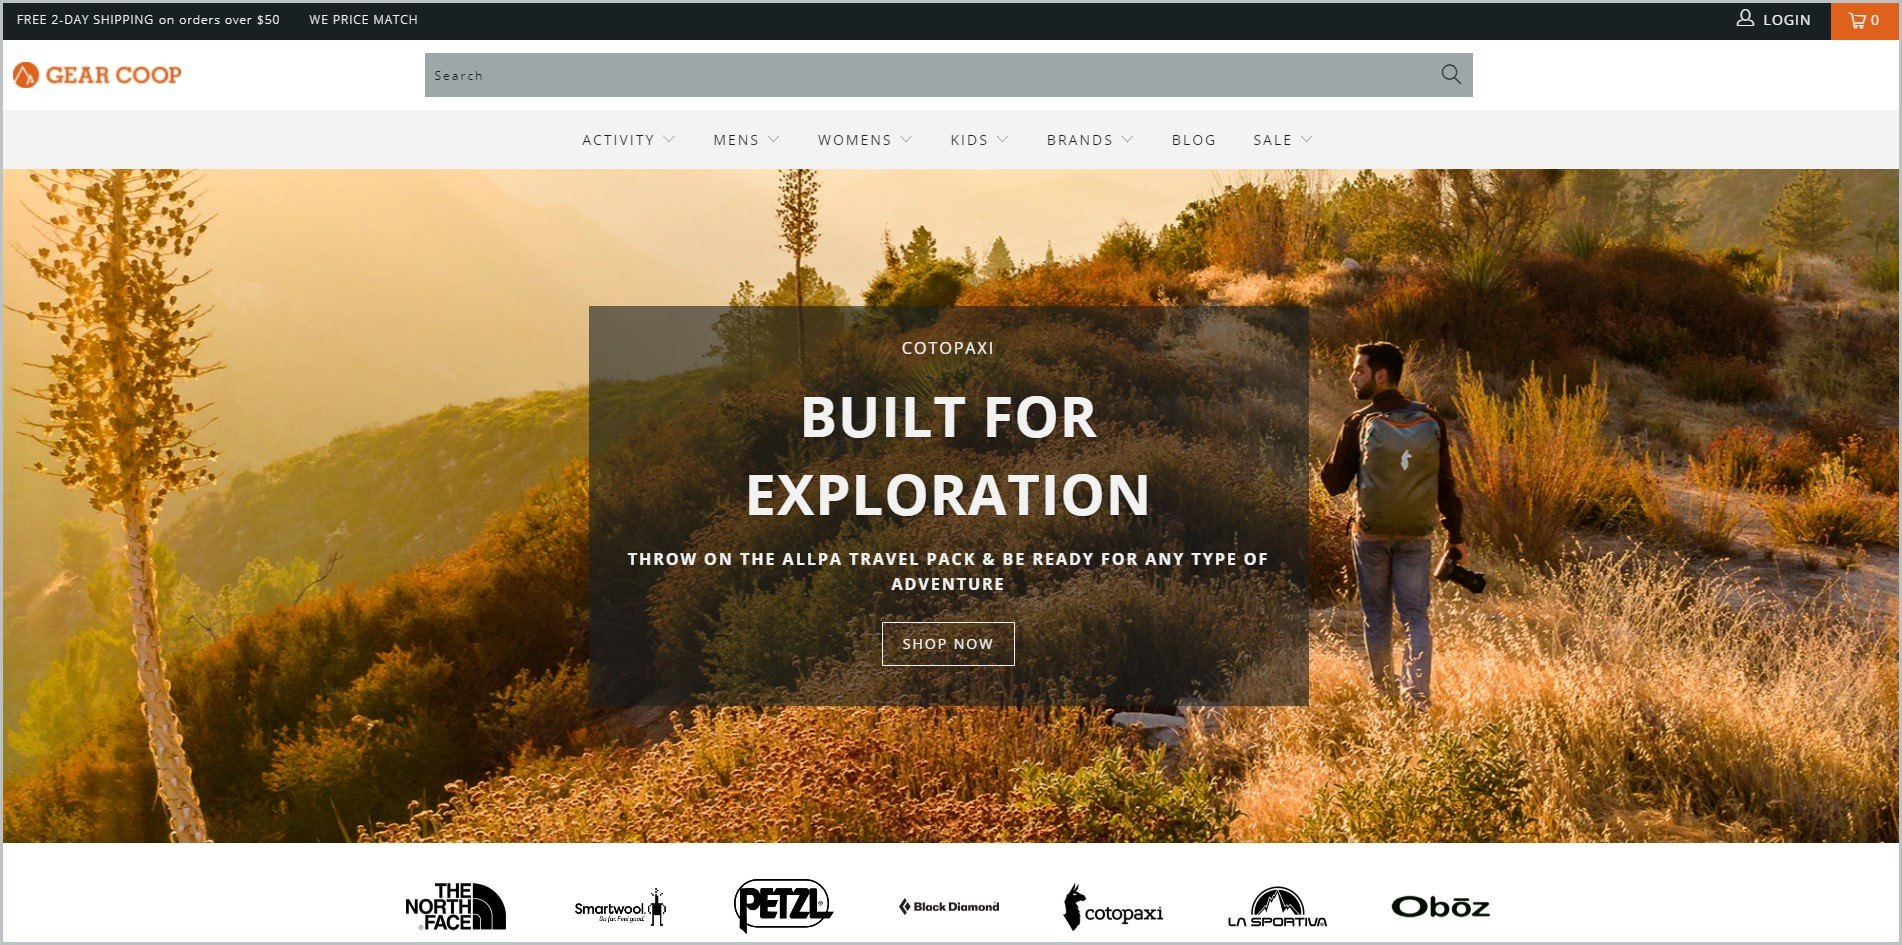 screenshot of Gear Coop homepage, with white header with the website's name and main navigation menu, it showcases an image of a man hiking along the mountain